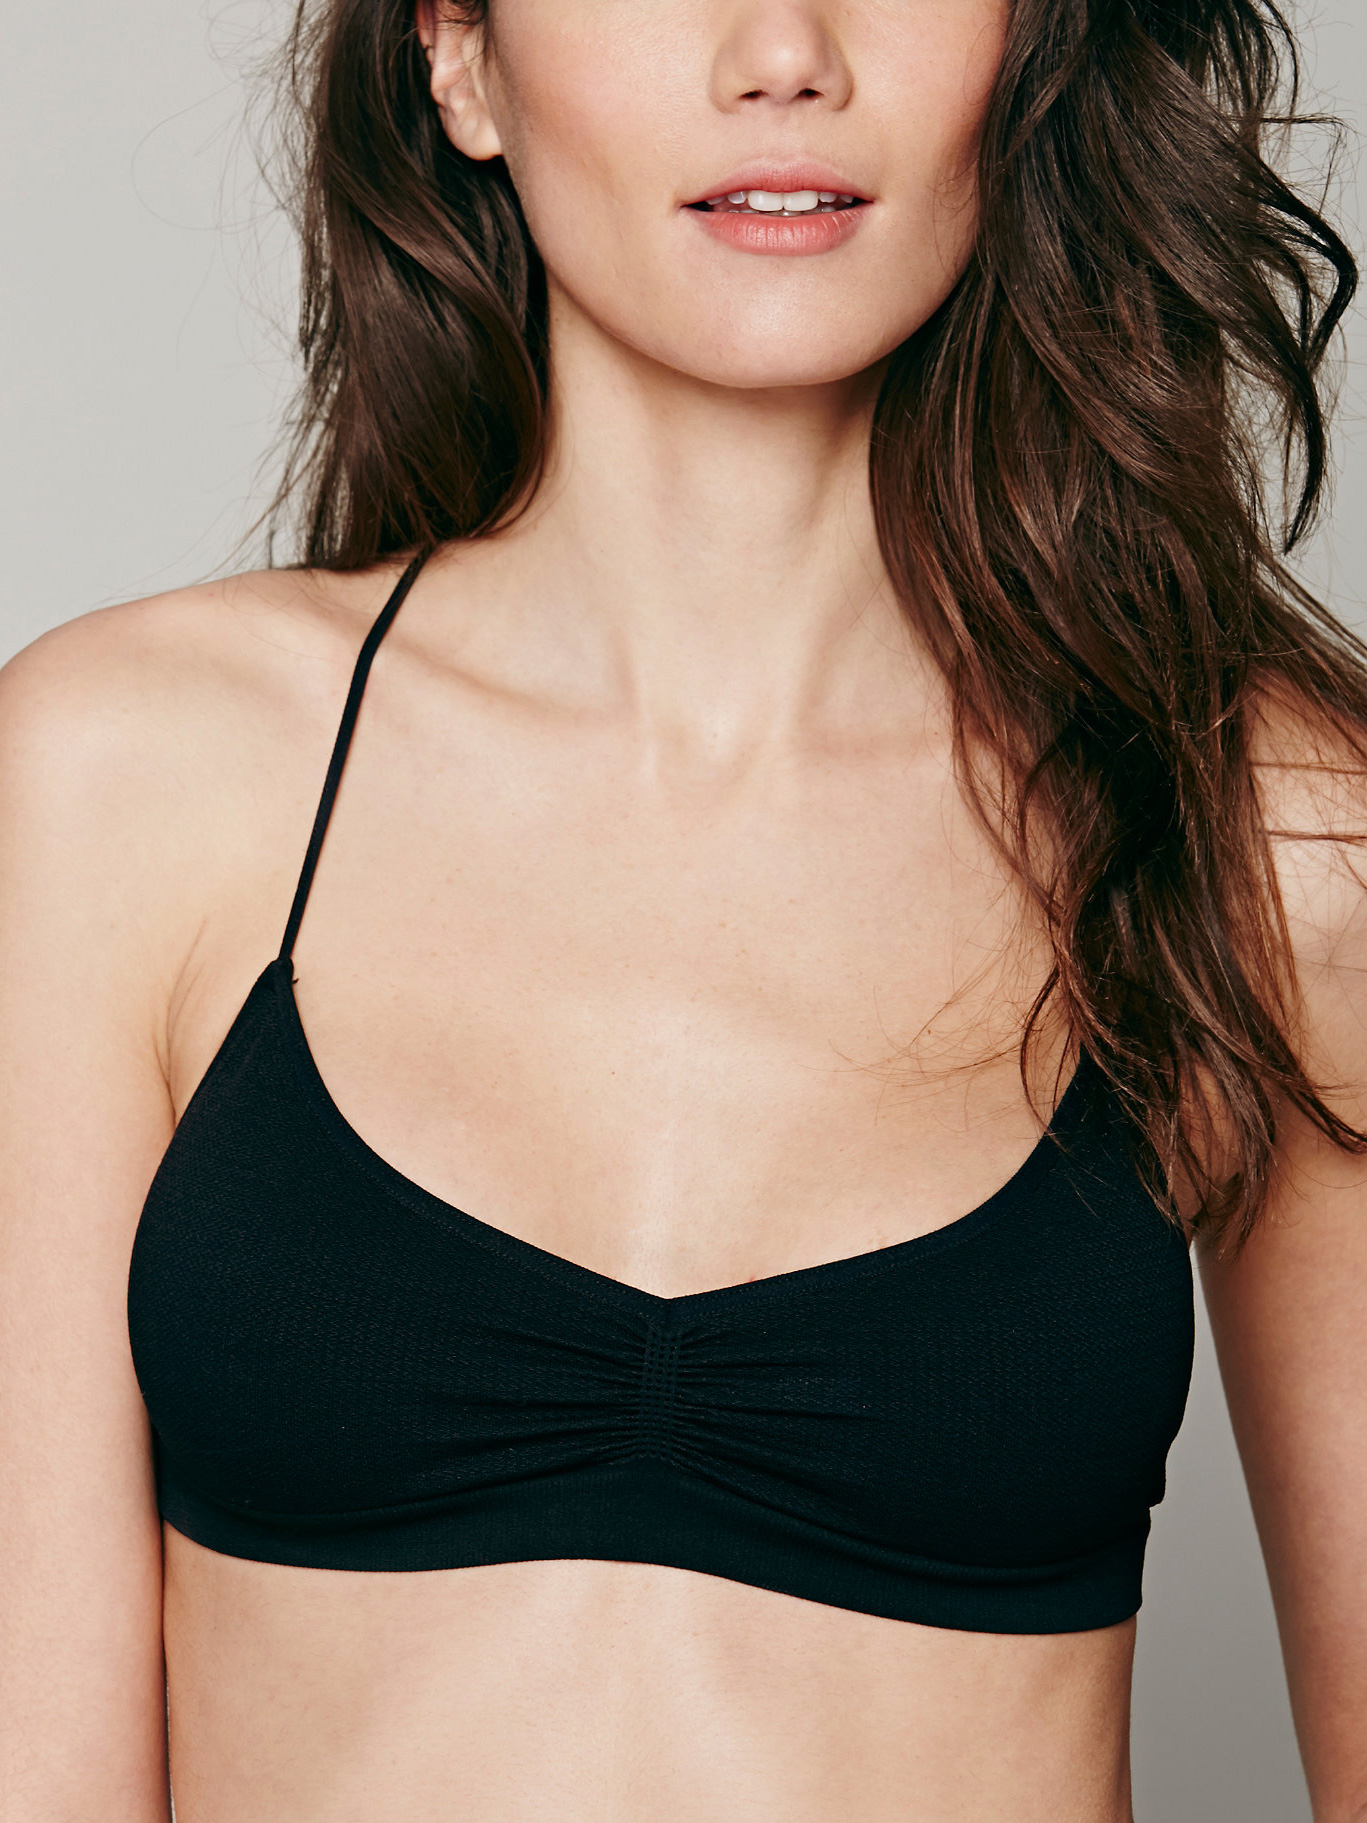 Free People Seamless Strappy Back Bra - Black - XSmall/Small plus size,  plus size fashion plus size appare